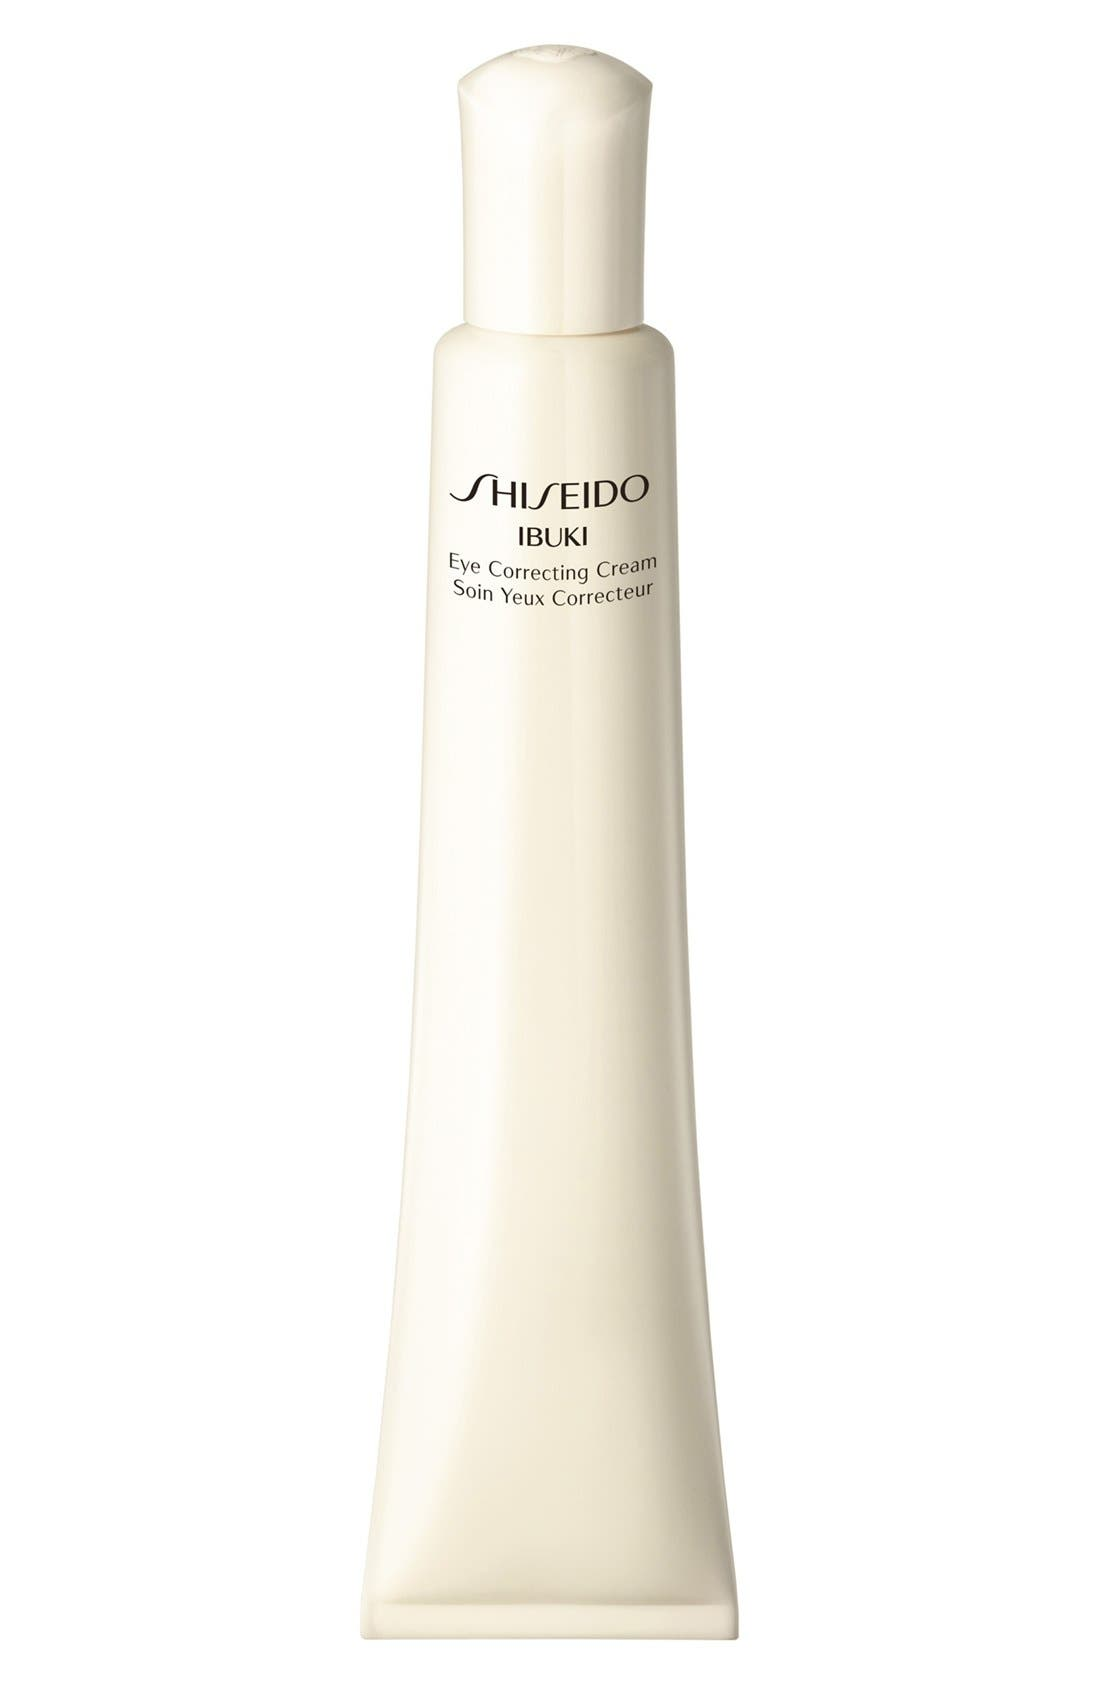 Shiseido 'Ibuki' Eye Correcting Cream